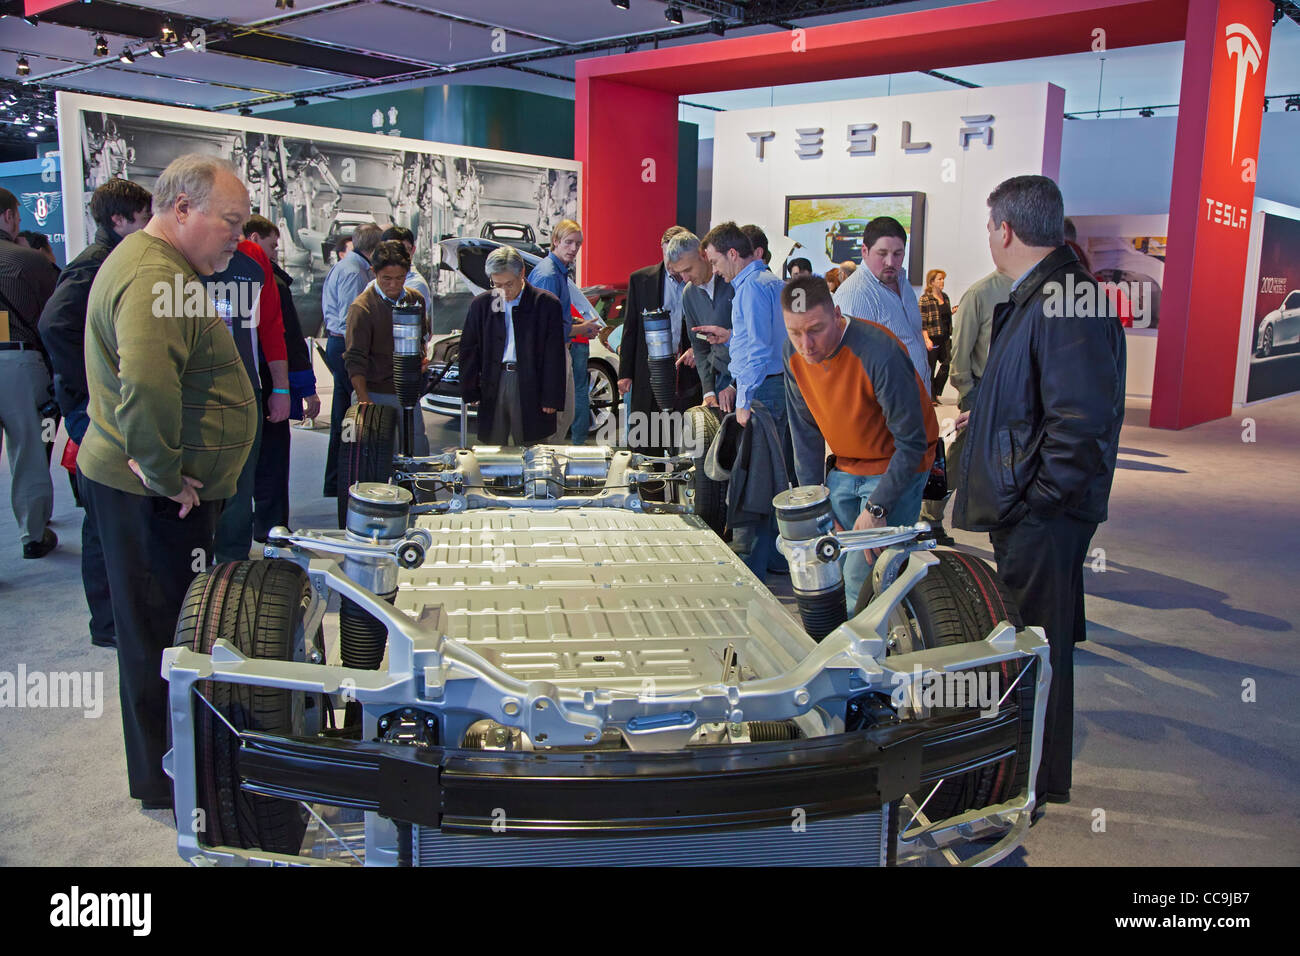 Chassis of the Tesla Model S Electric Sports Sedan at the Detroit Auto Show - Stock Image